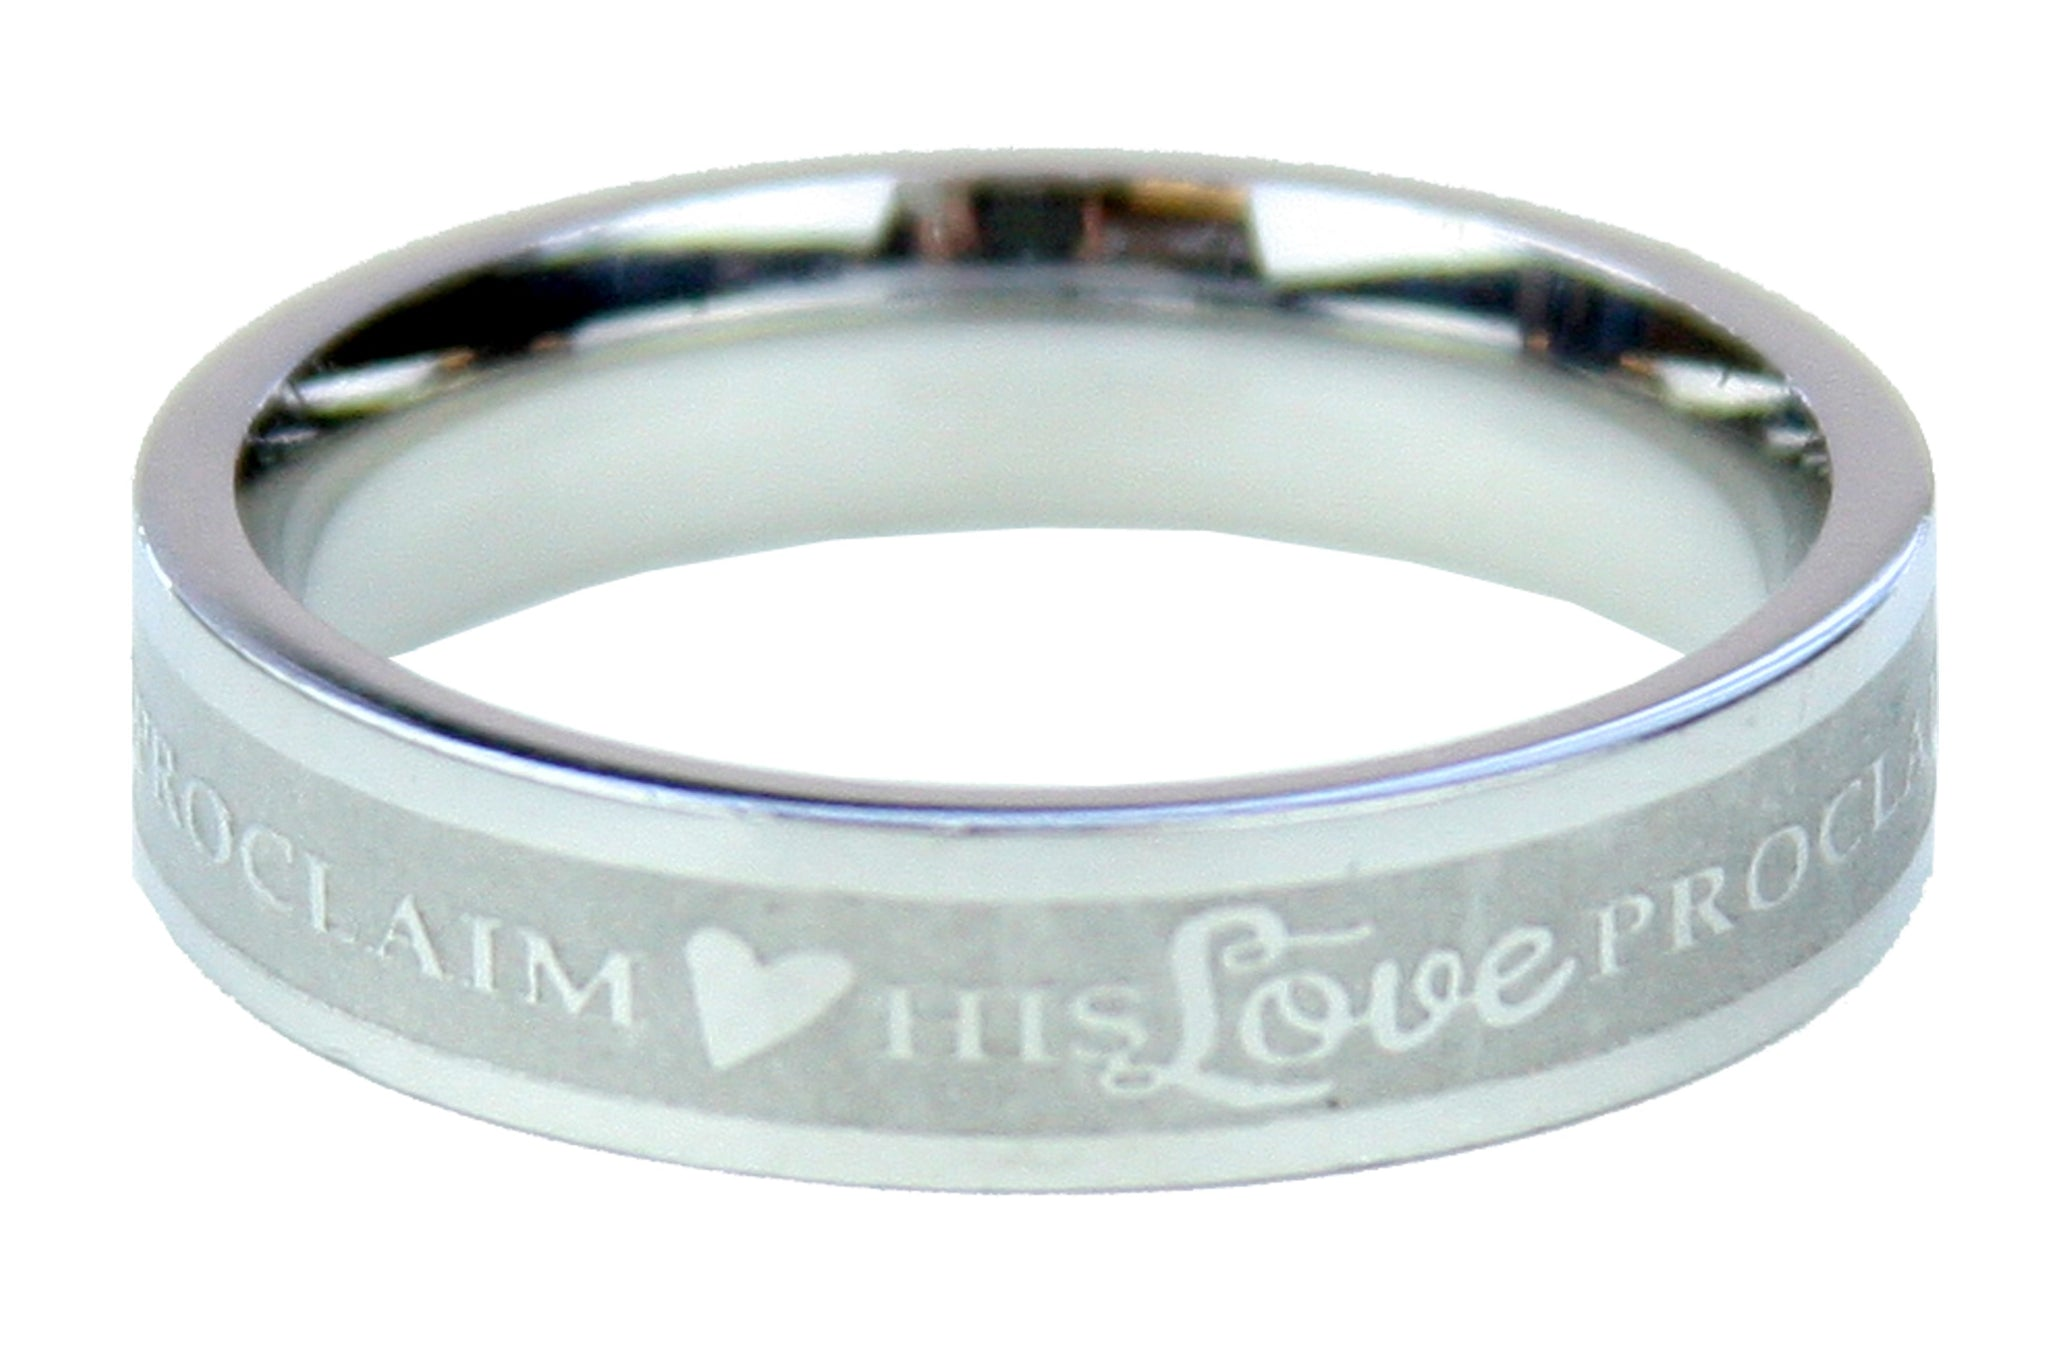 C122 His Love Proclaim Ring (Size 6)